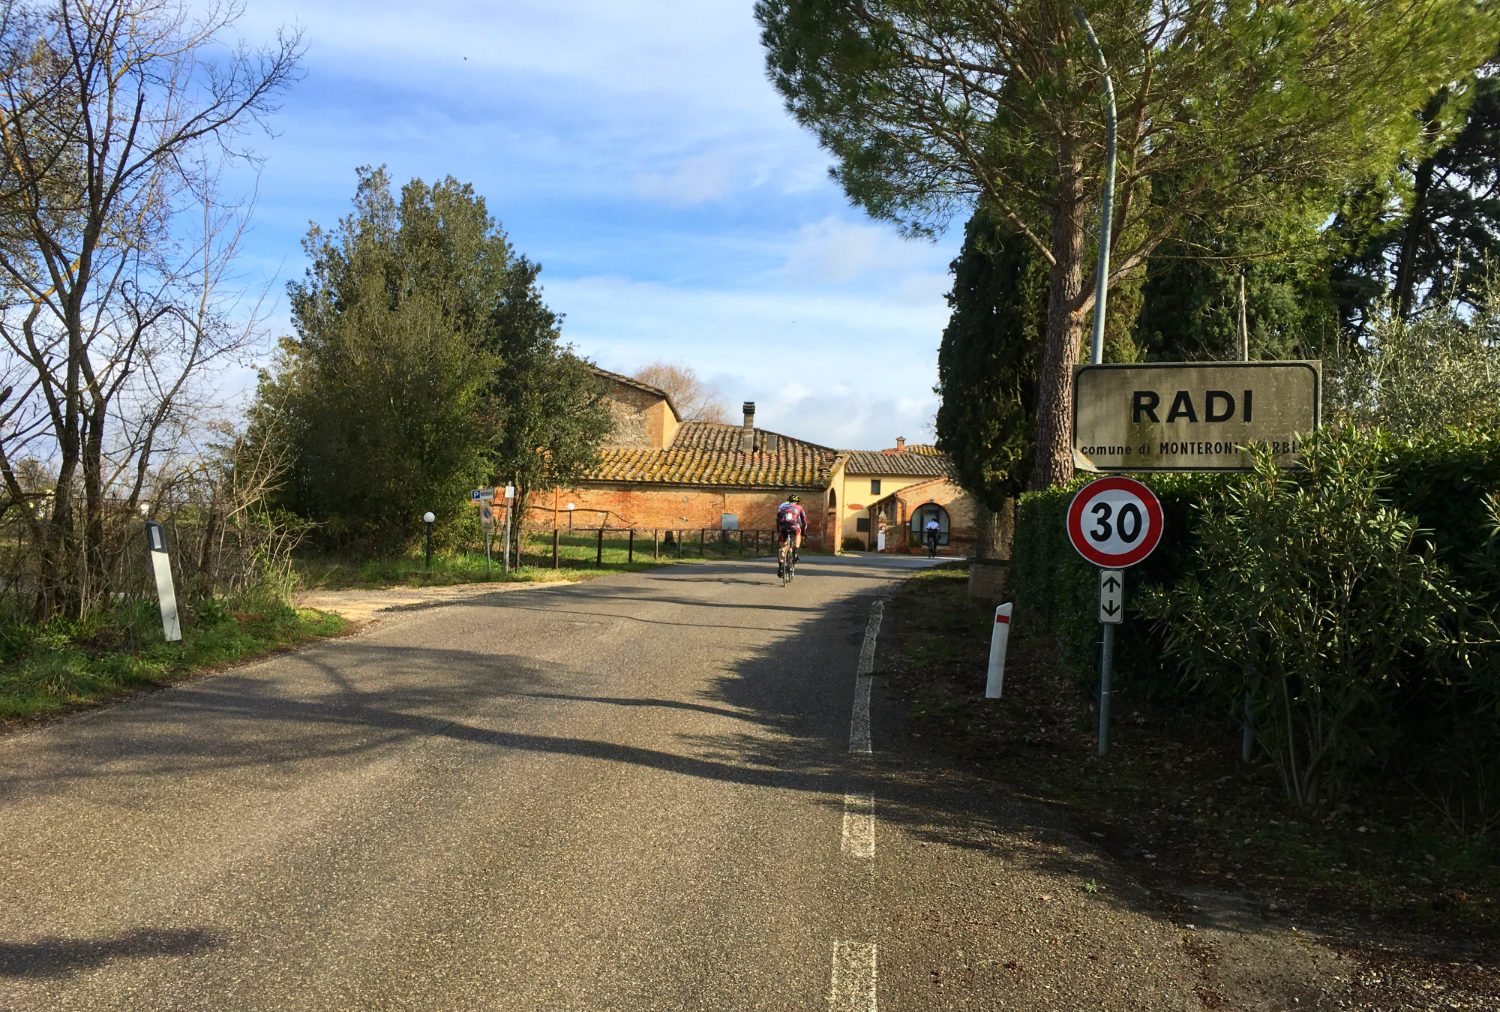 The village of Radi in Tuscany